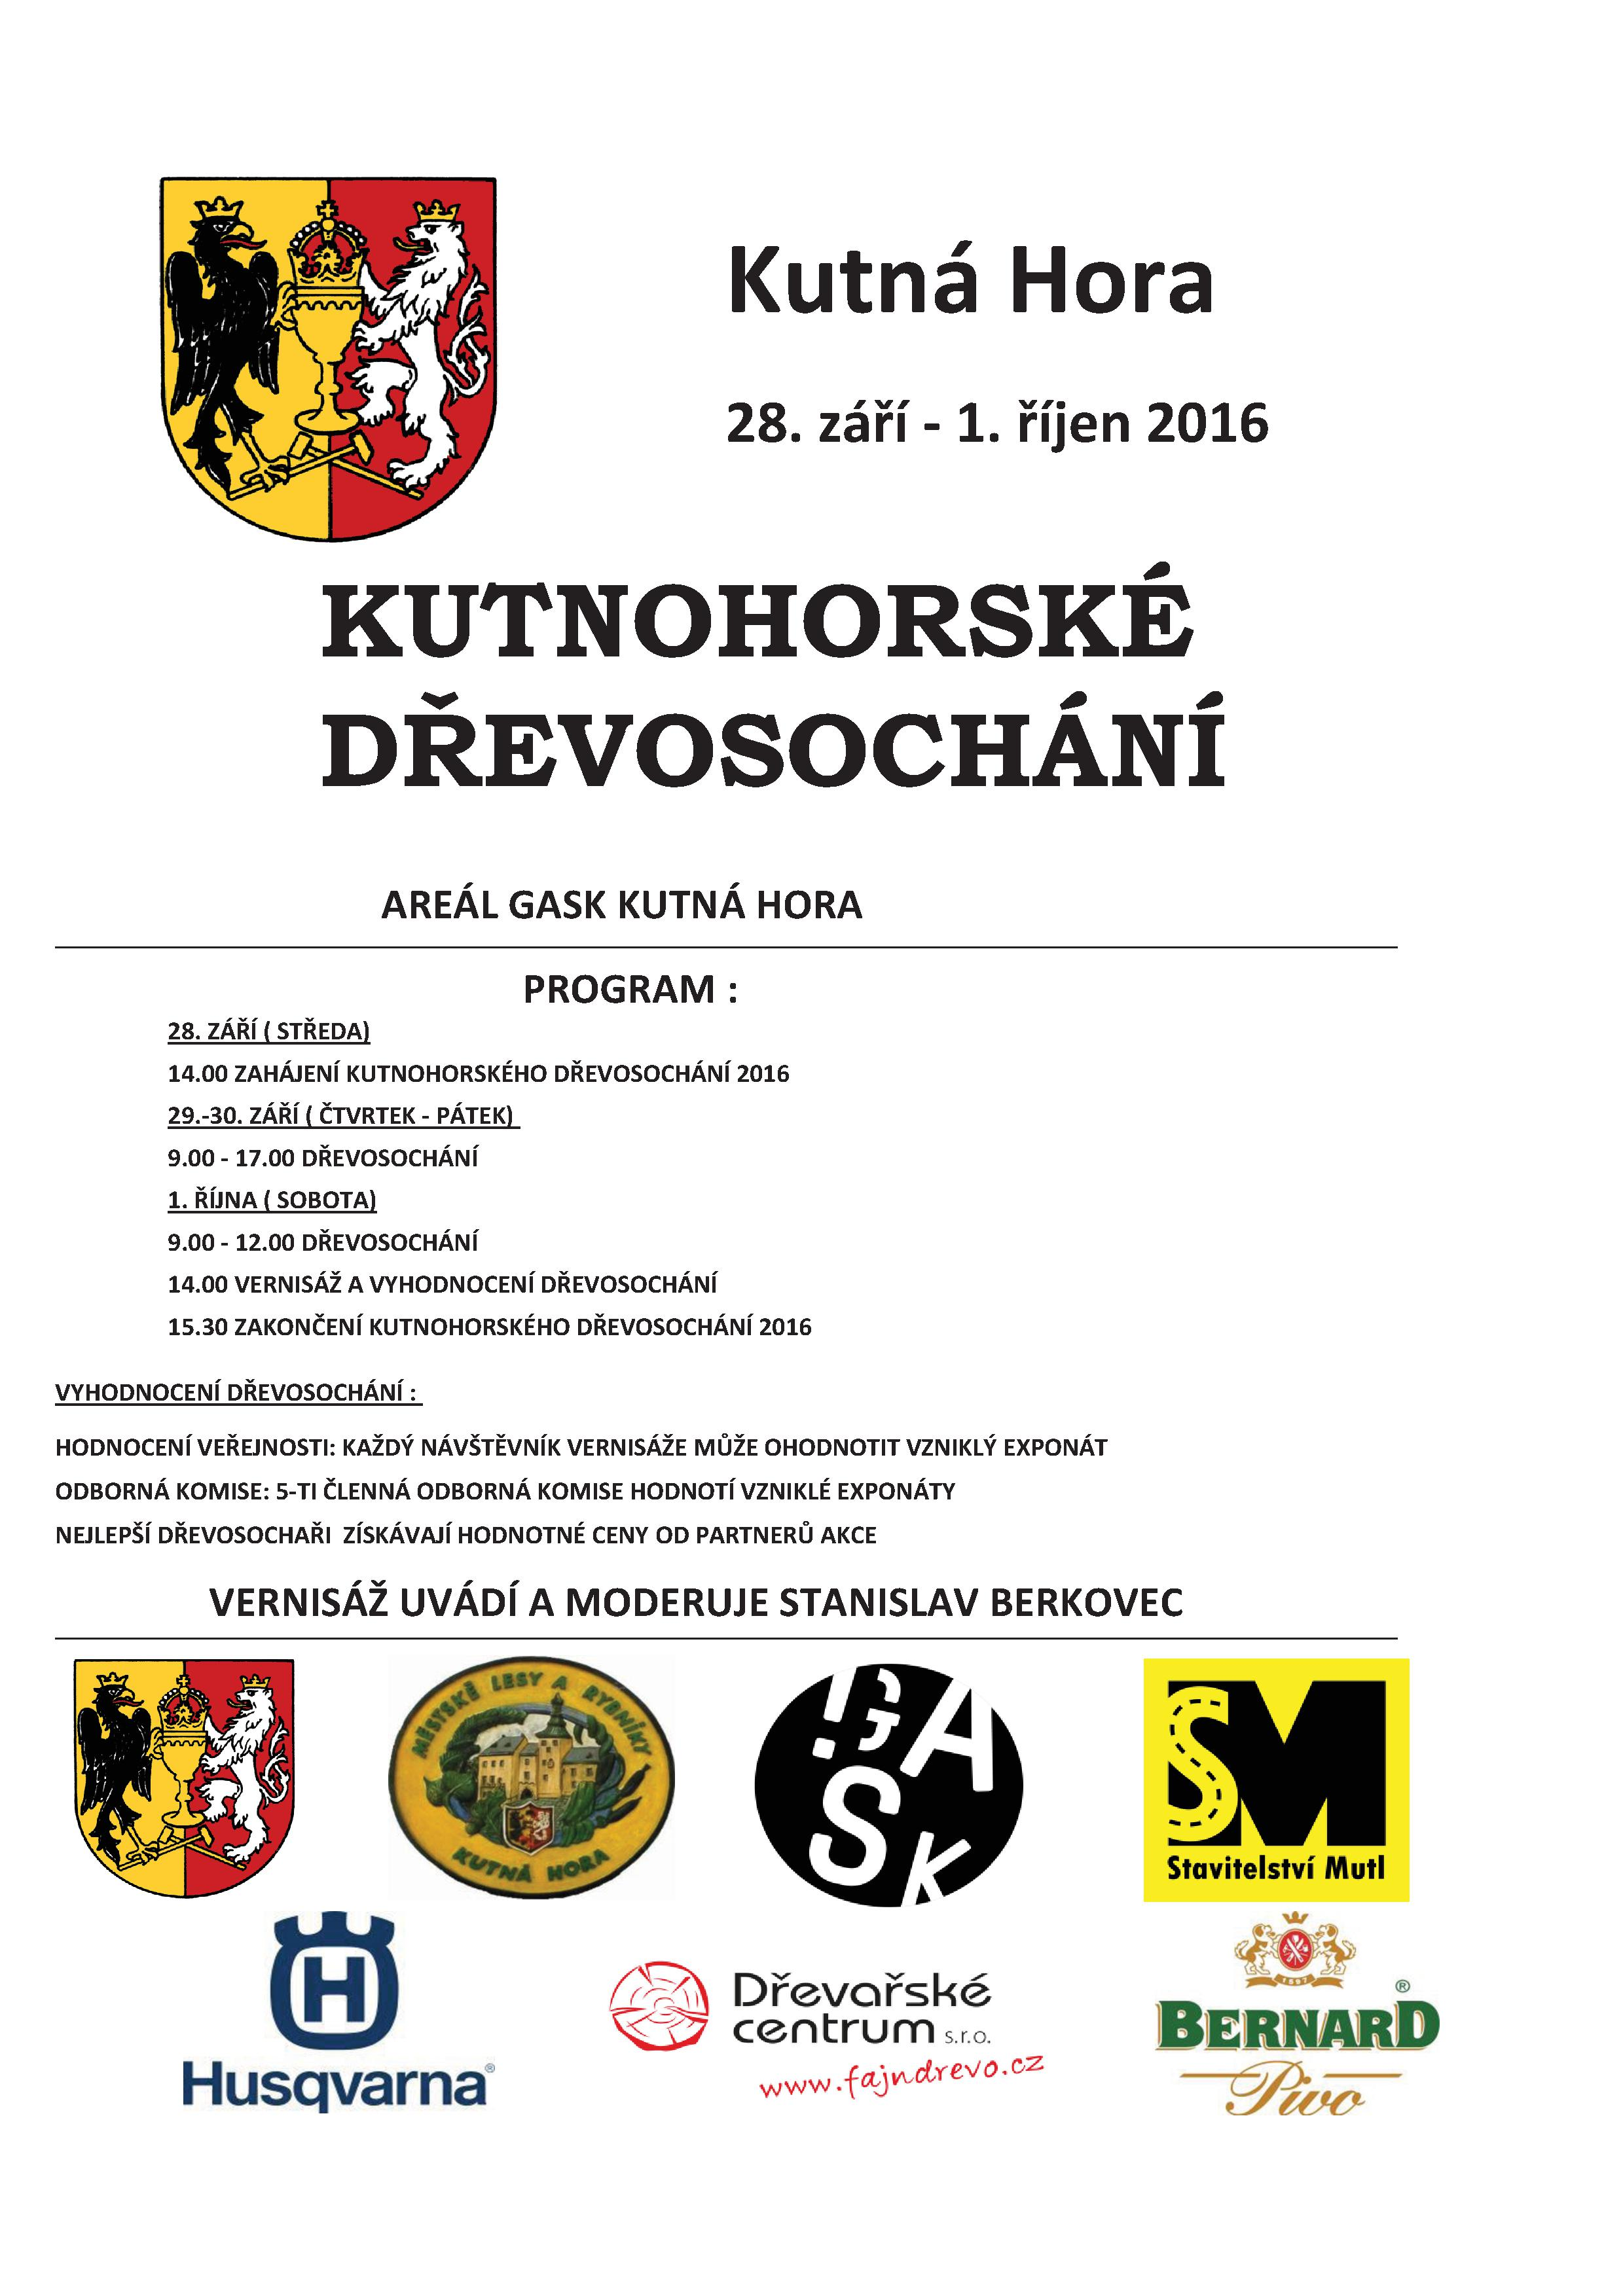 912-final-kh-plakat-drevosochani-2016.jpg